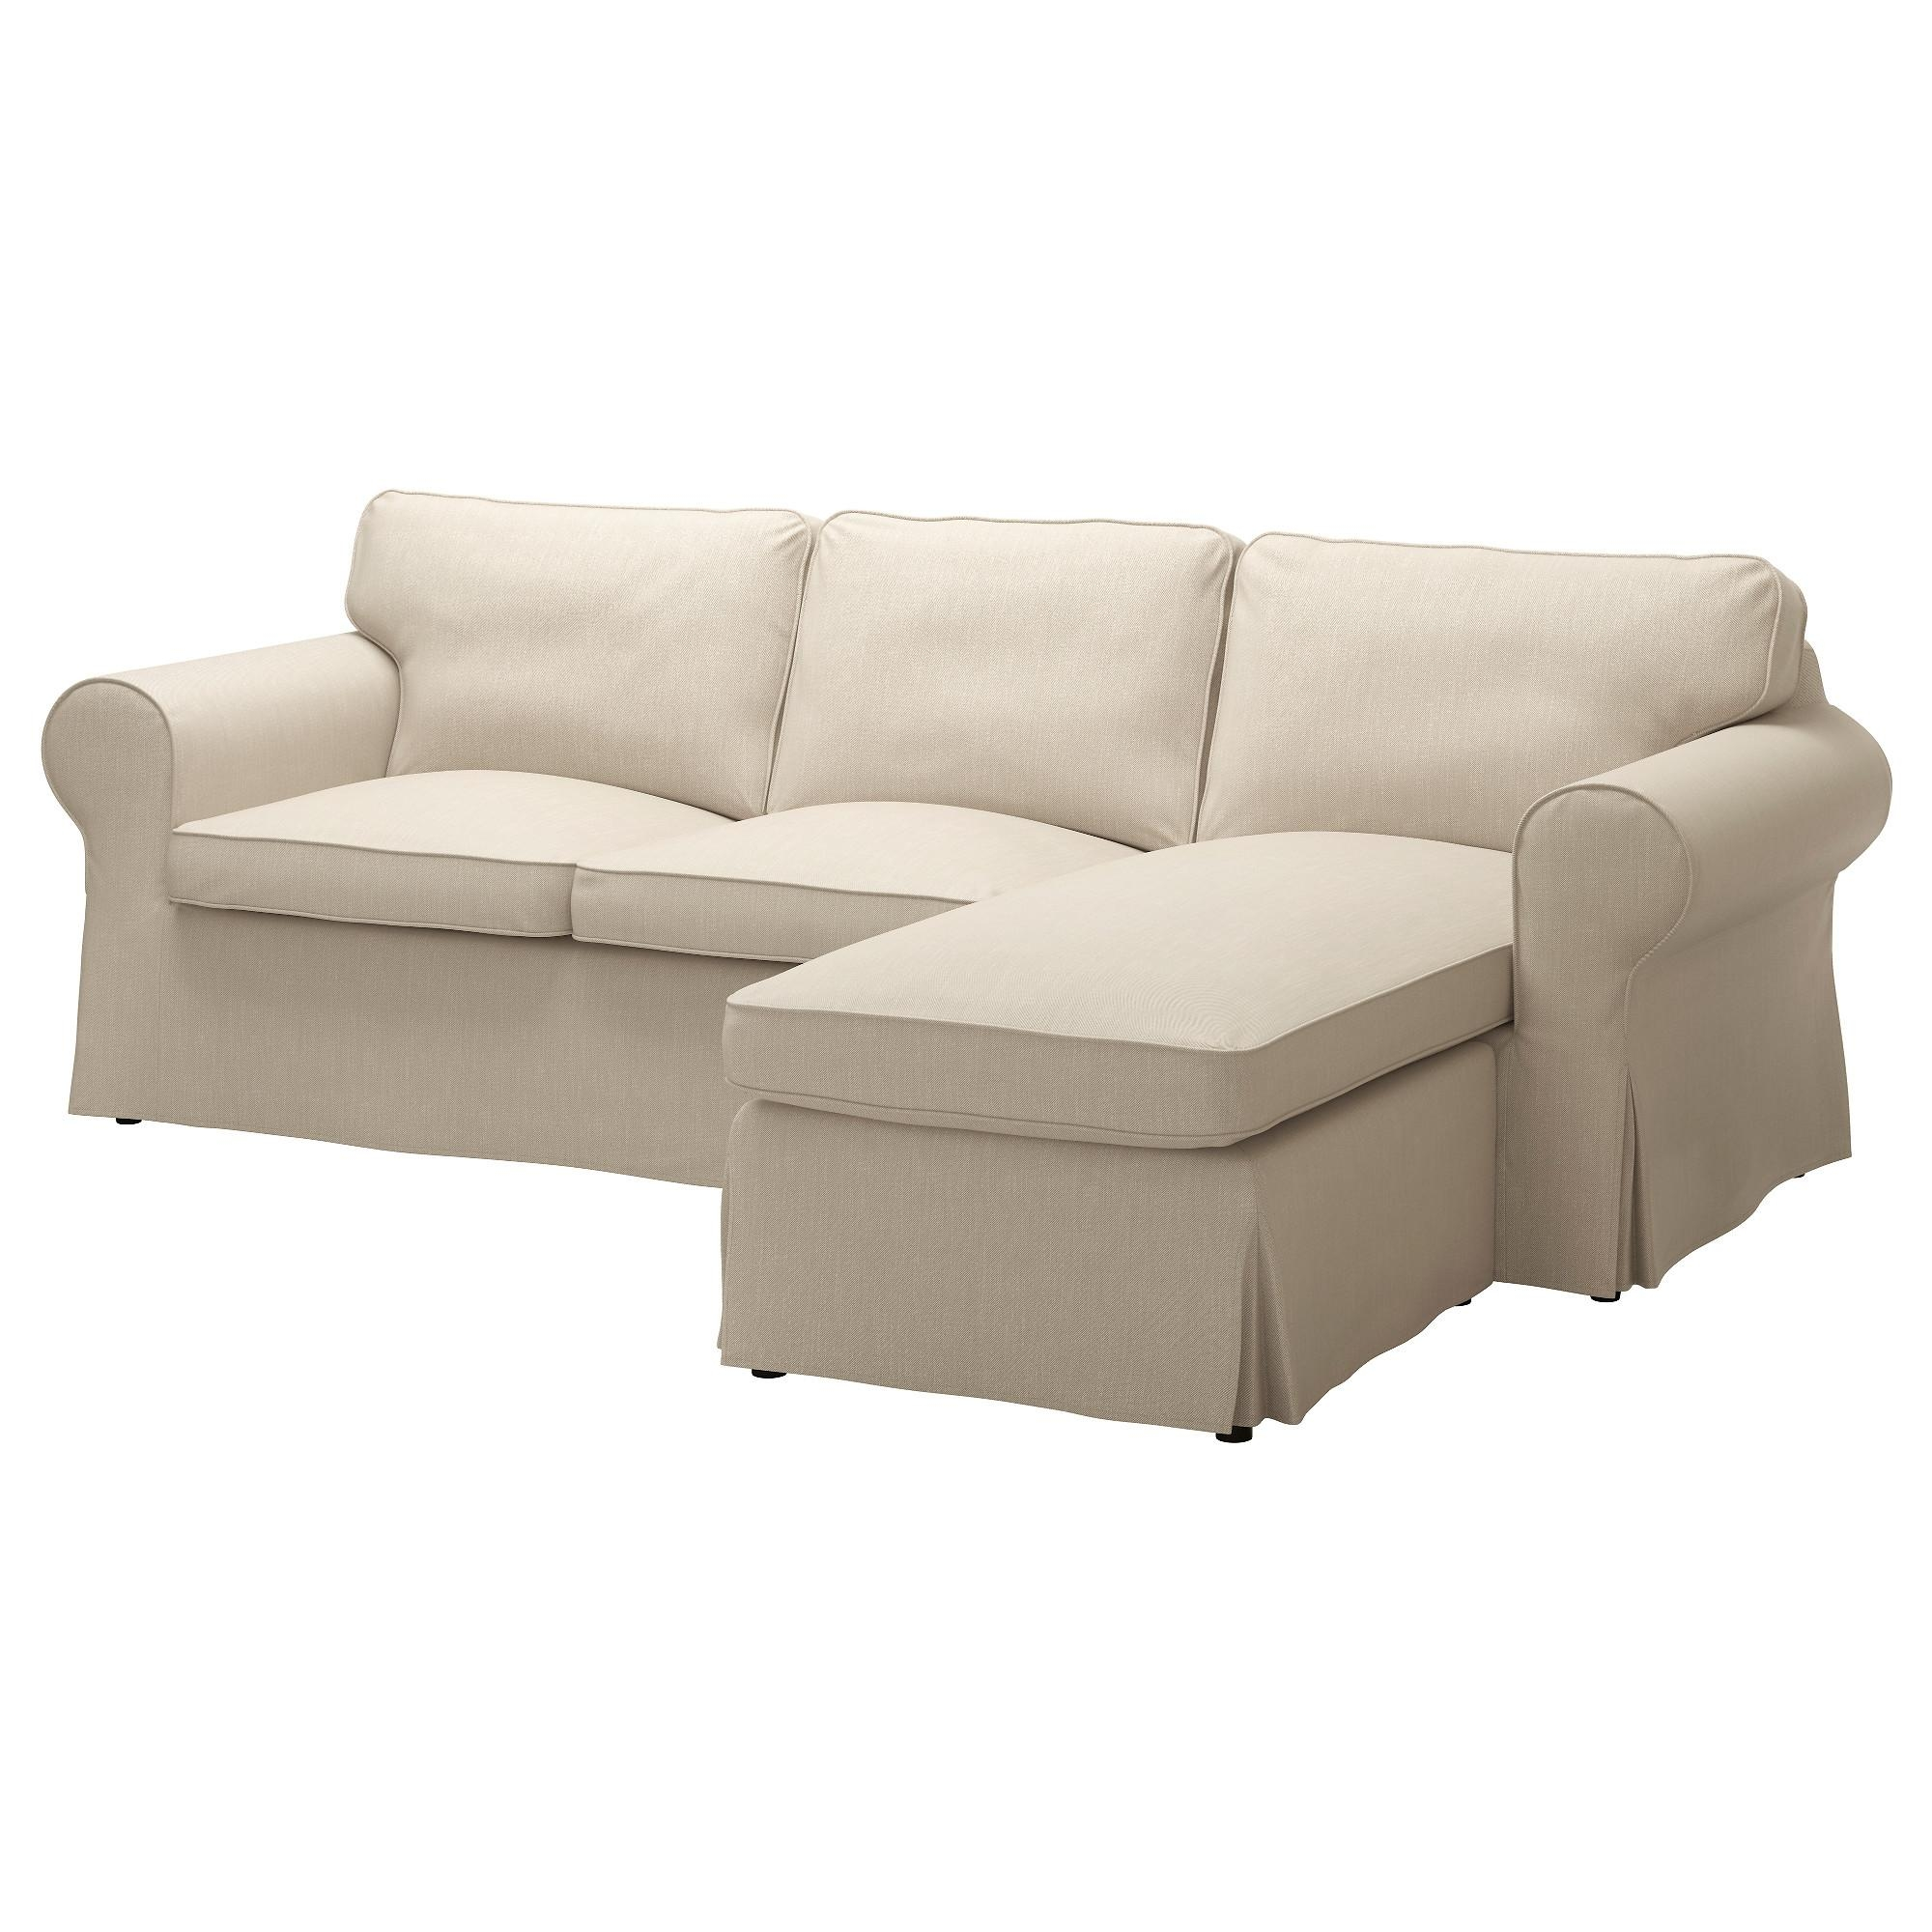 Ikea Bezüge Sofa 20 Photos Ikea Chaise Lounge Sofa Sofa Ideas